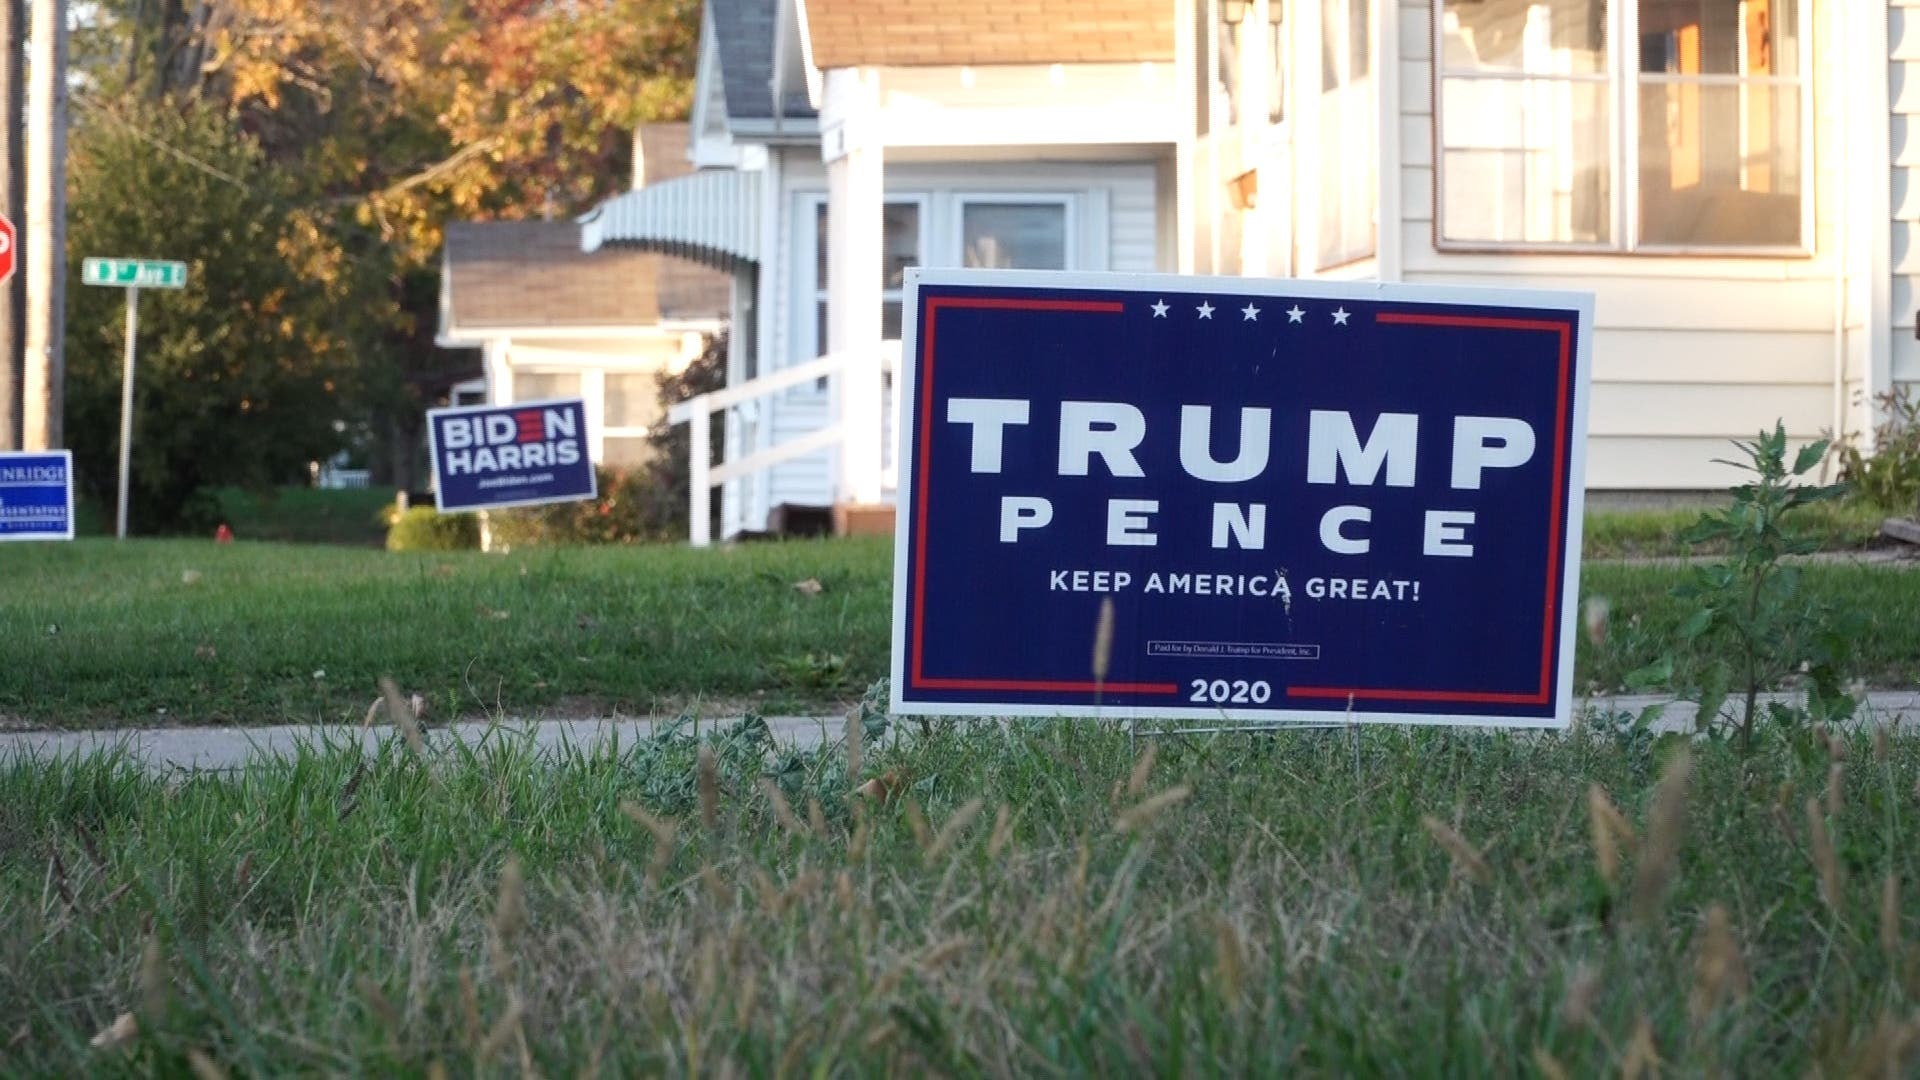 Signs in support of the candidate seen on lawns. (File photo: AFP)